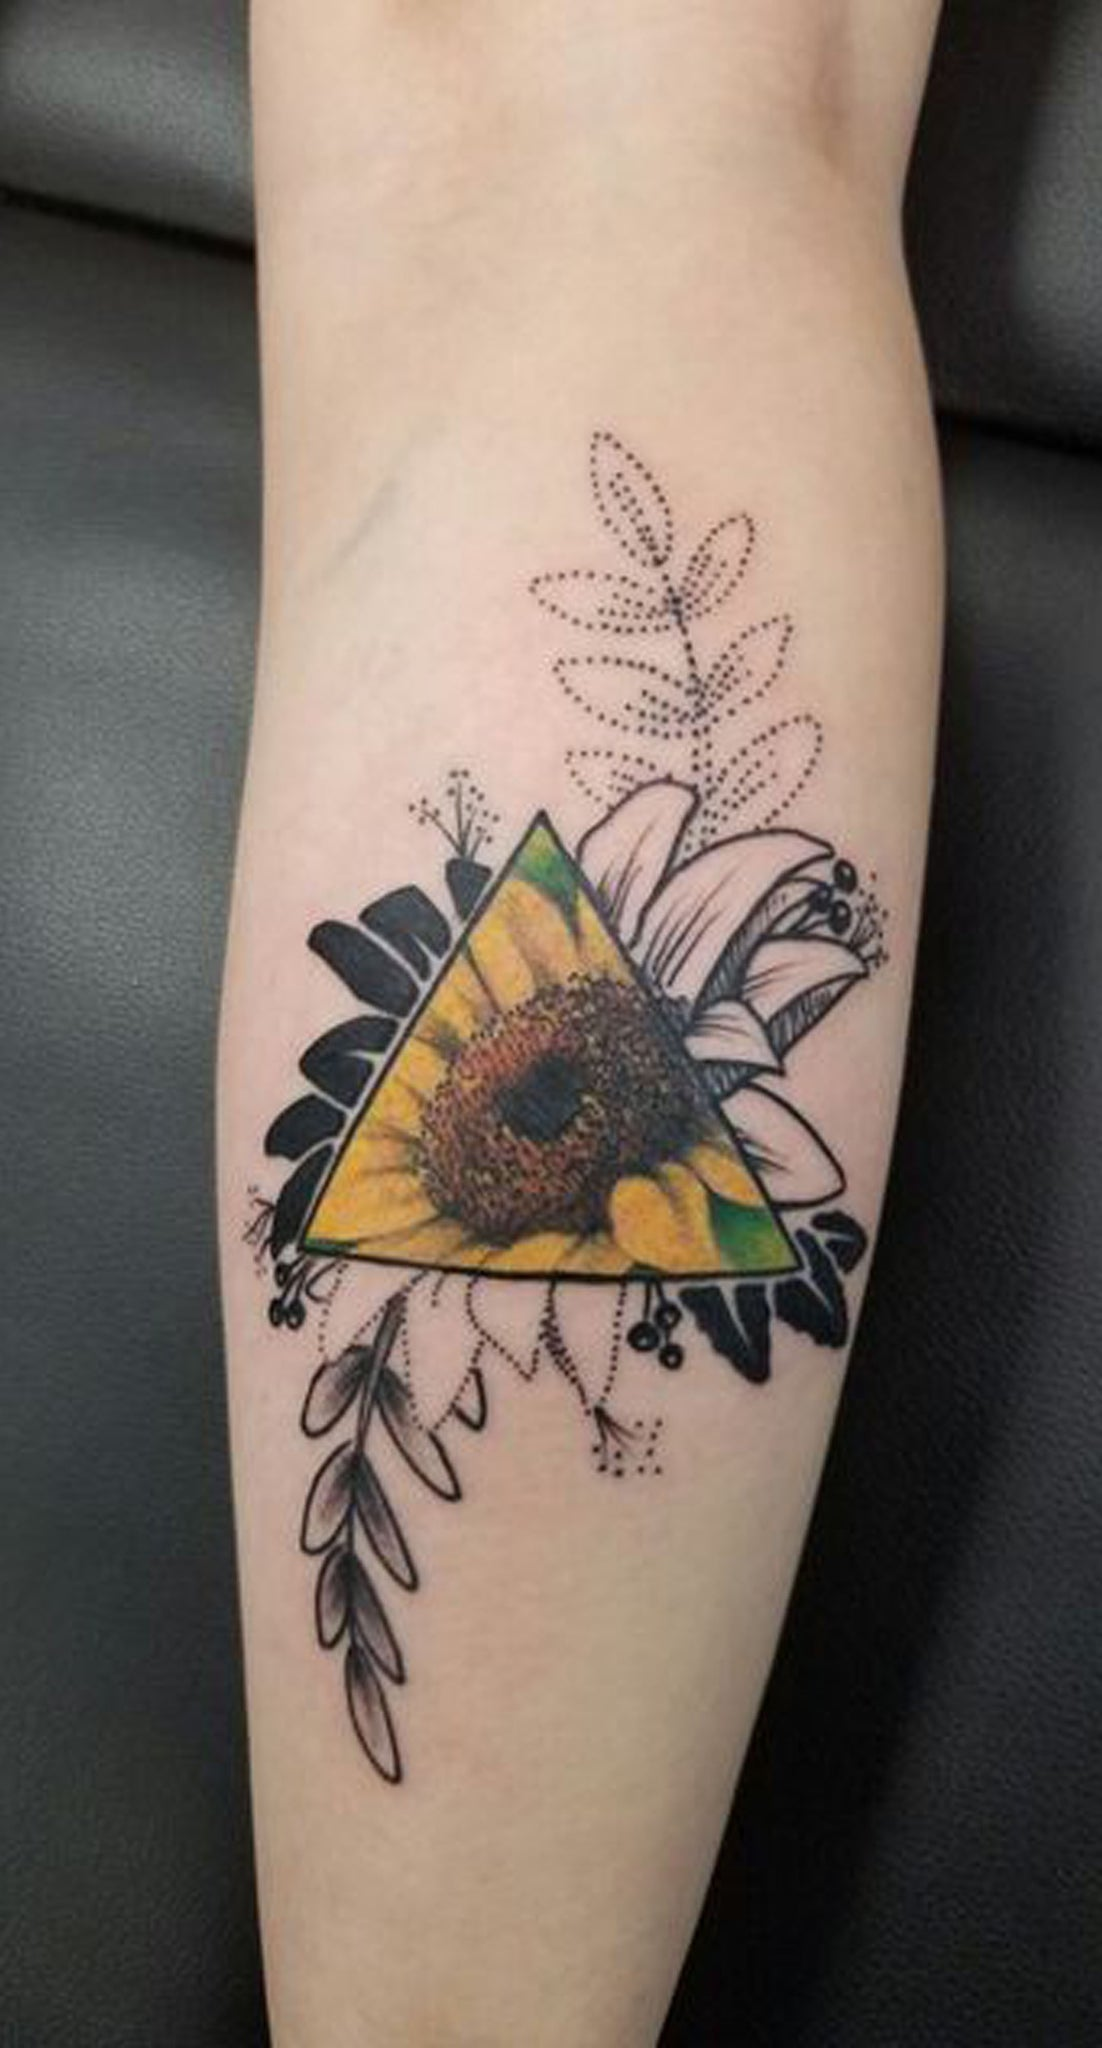 Geometric Unique Sunflower Forearm Tattoo Ideas for Women - Black White Colorful Cool Flower Arm Tattoo - www.MyBodiArt.com #tattoos